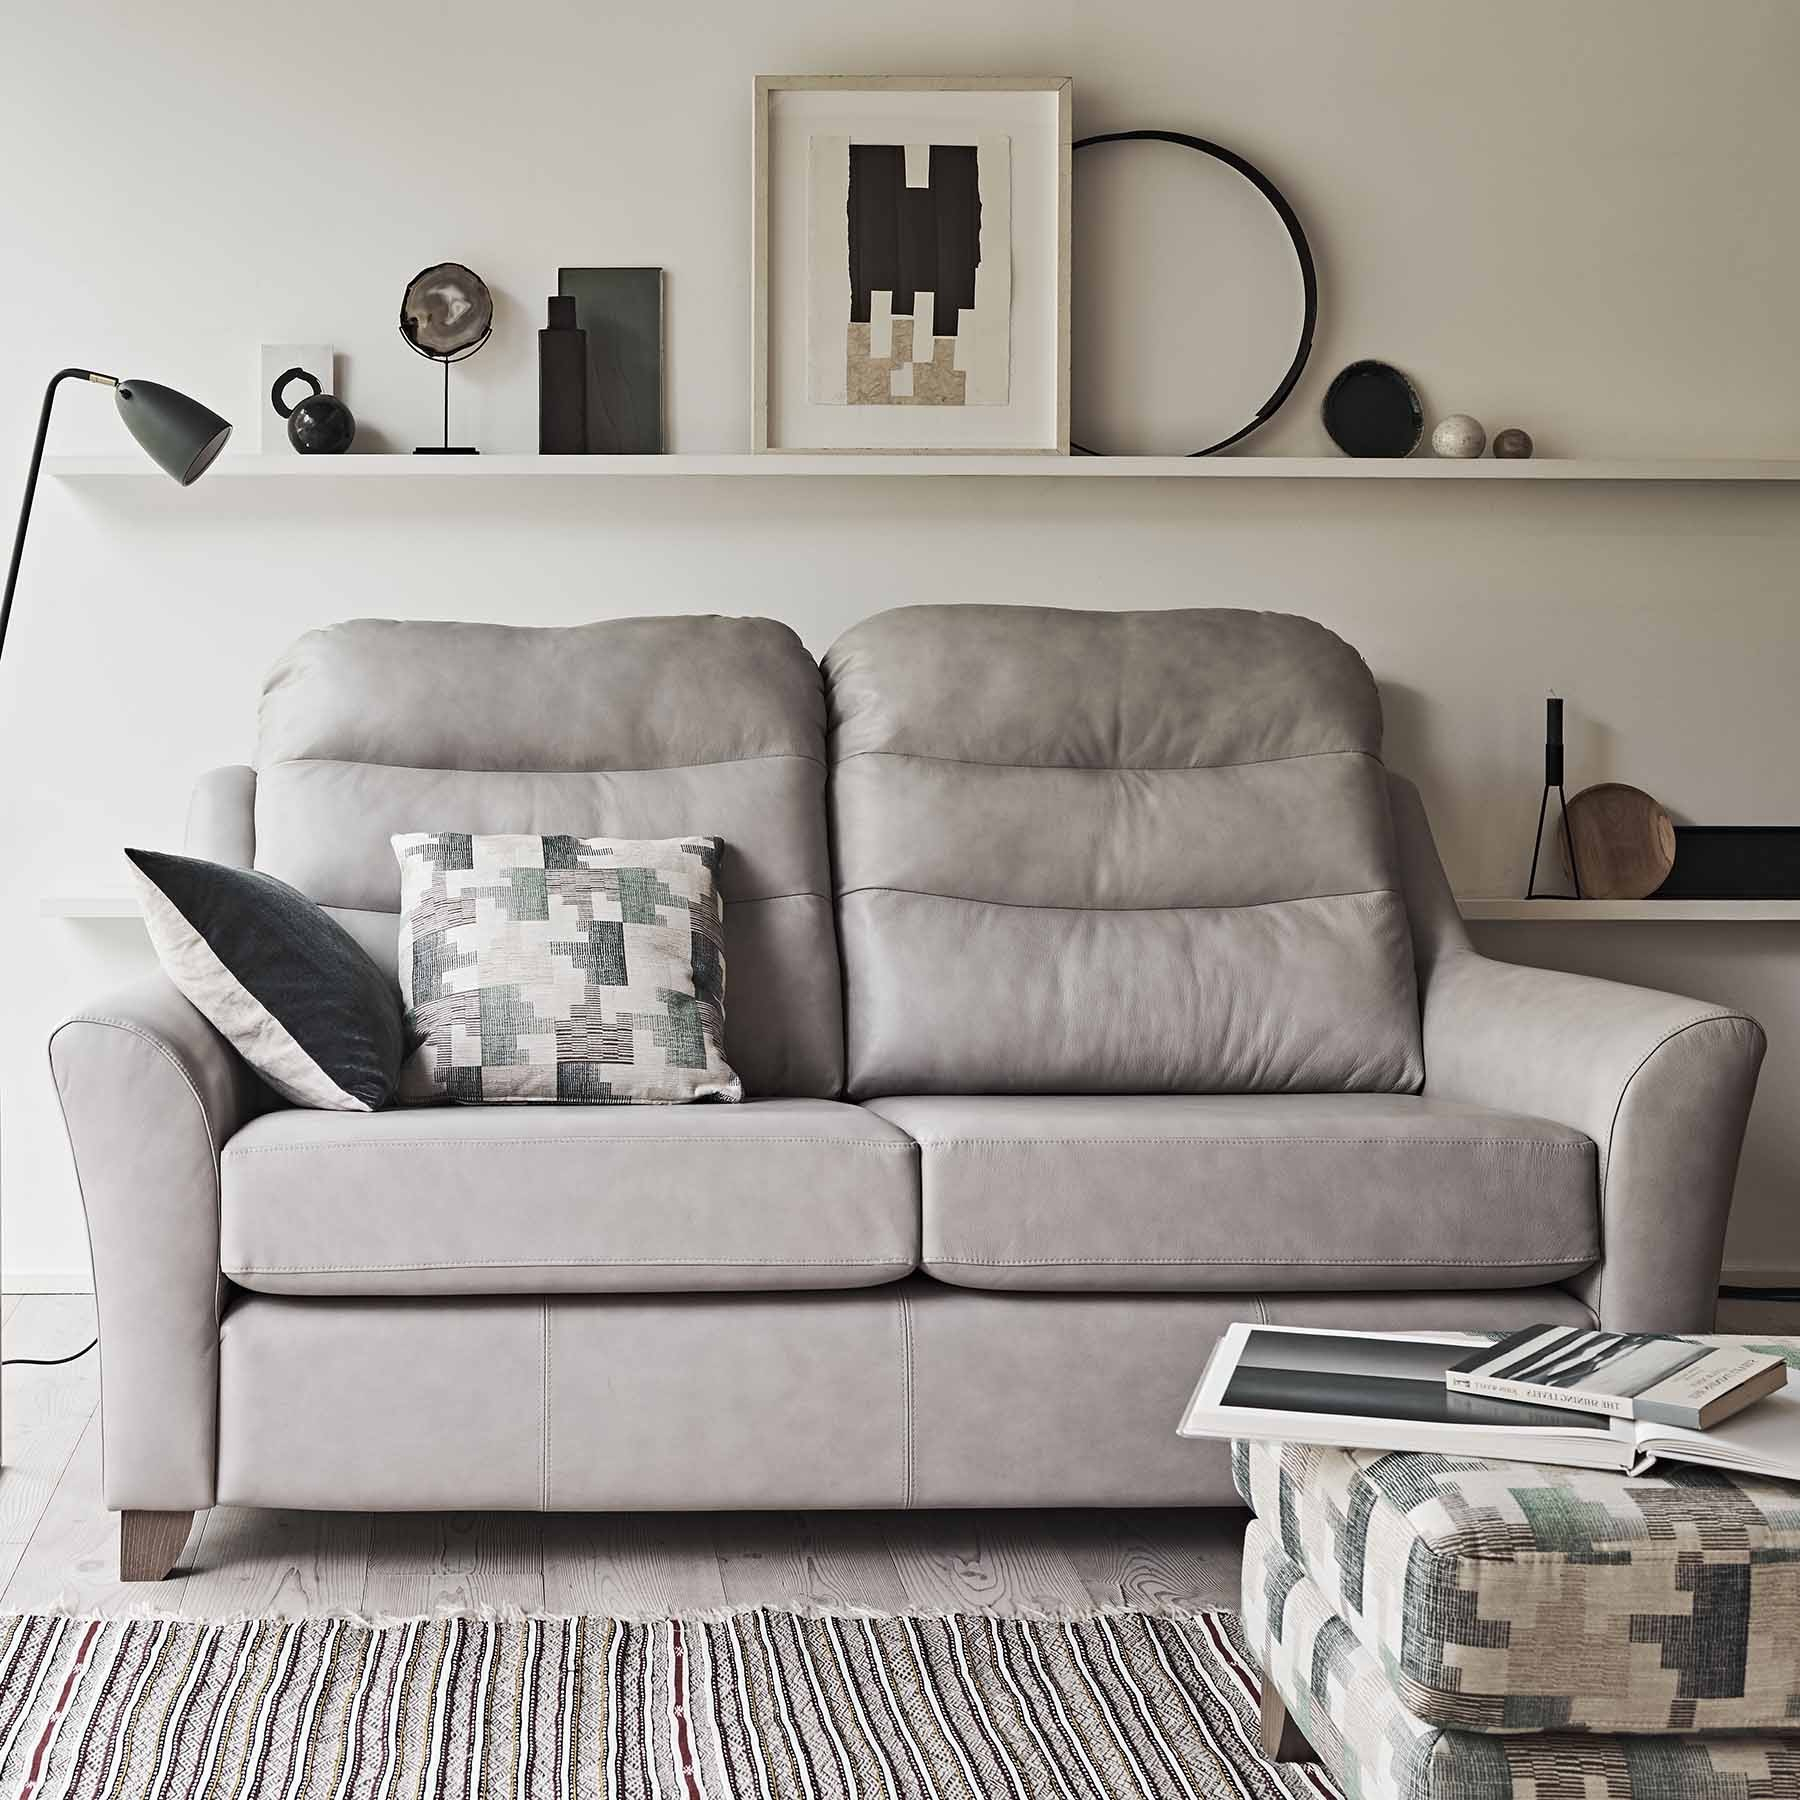 G Plan Tate Leather 3 Seater Sofa | Tr Hayes – Furniture Store, Bath With Regard To Tate Arm Sofa Chairs (Photo 11 of 20)